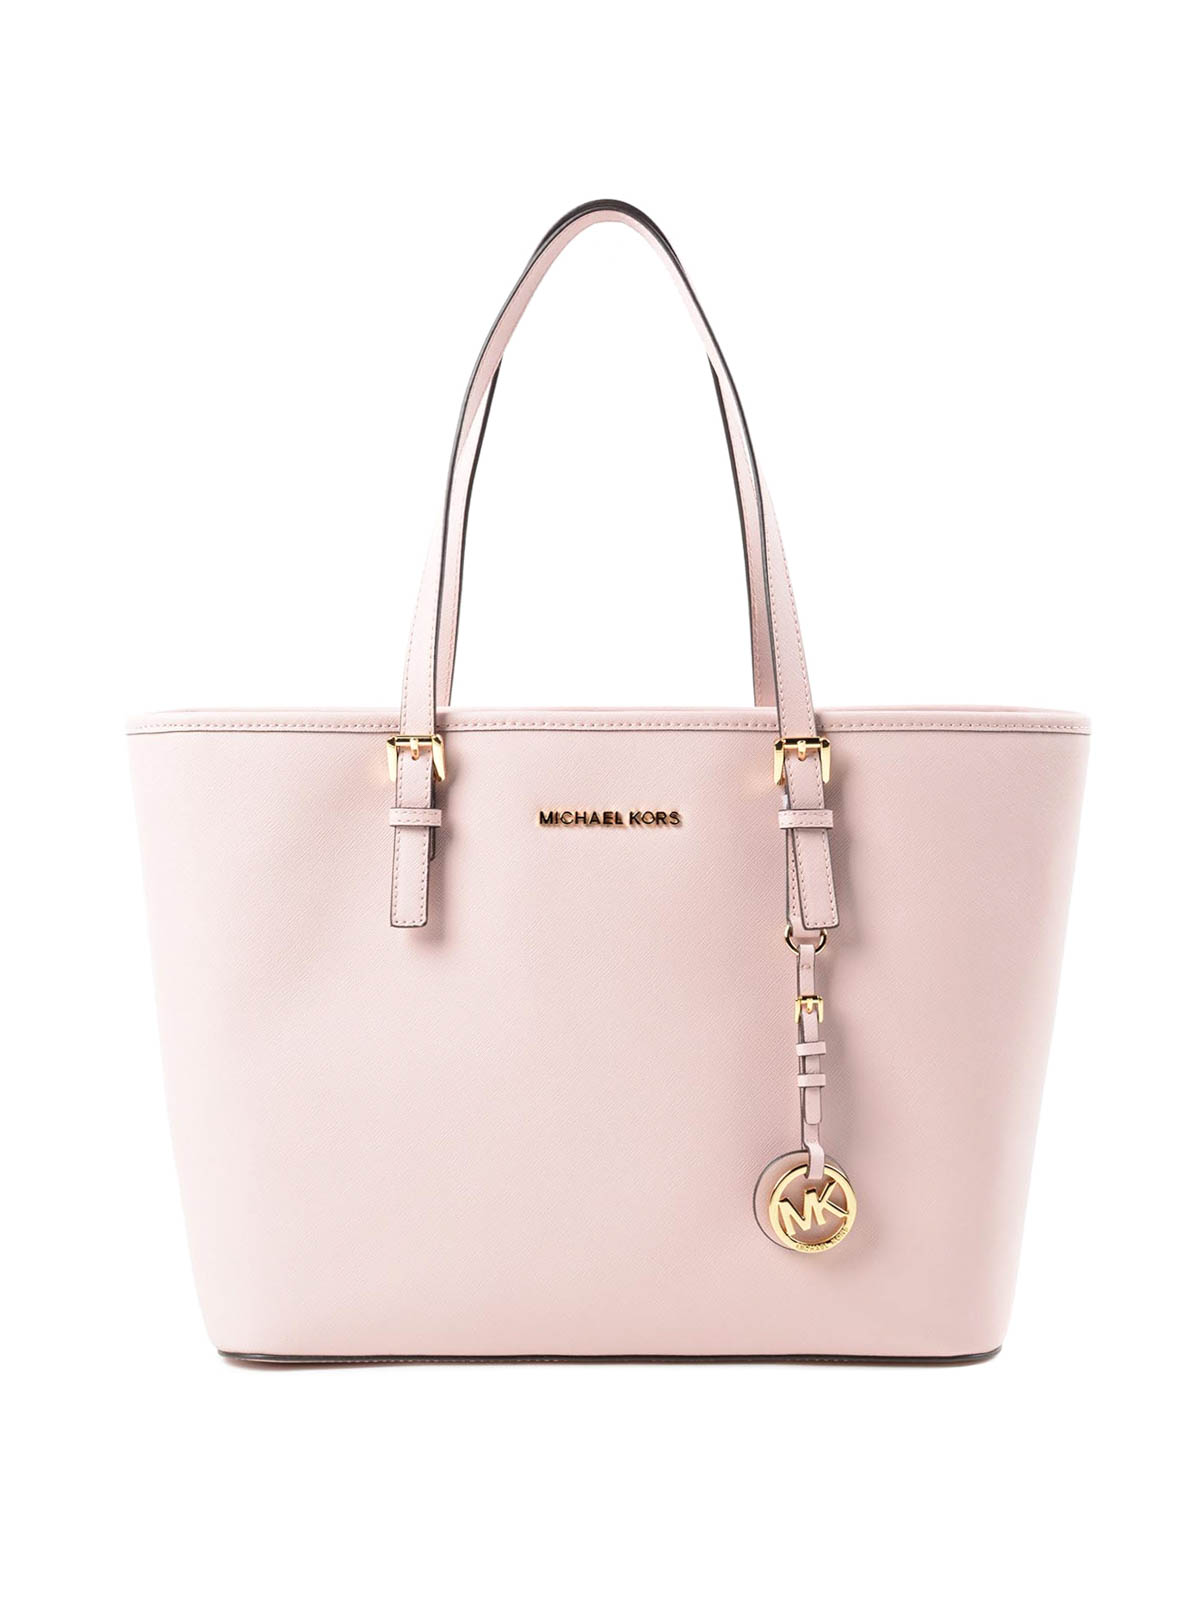 Michael Kors Jet Set Tote Laukku : Jet set travel ping bag by michael kors totes bags